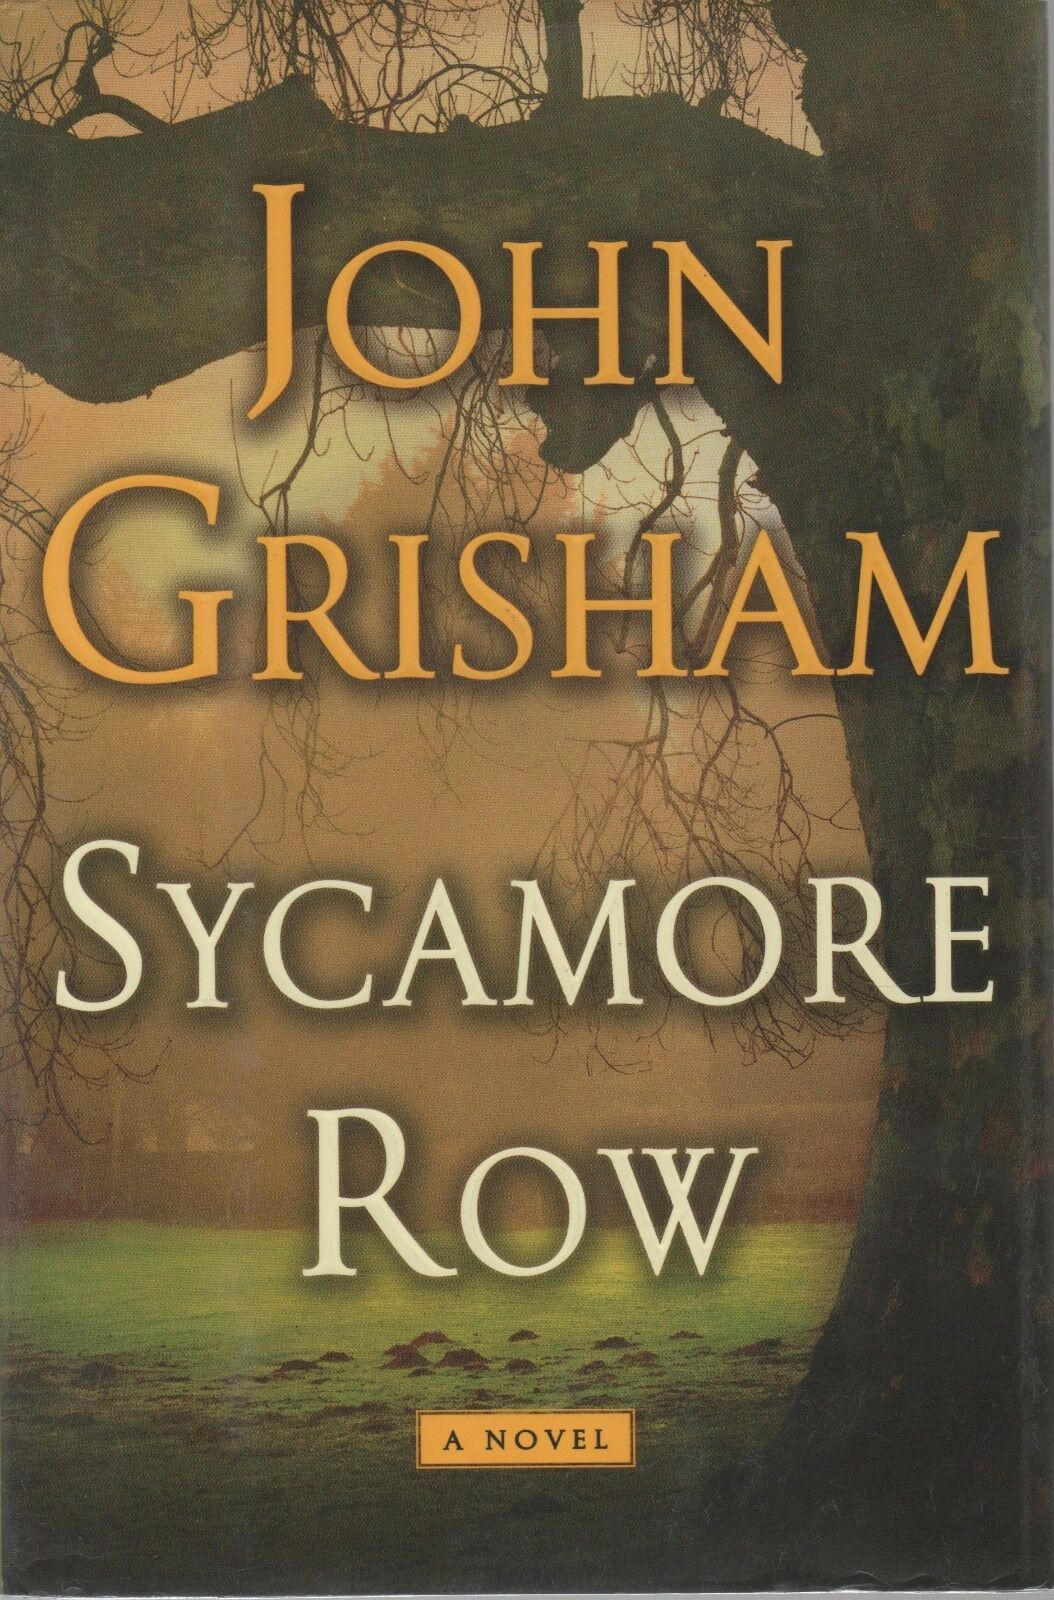 Sycamore Row - John Grisham - HC - 2013 - Doubleday Press - 978-0-385-53713-1.